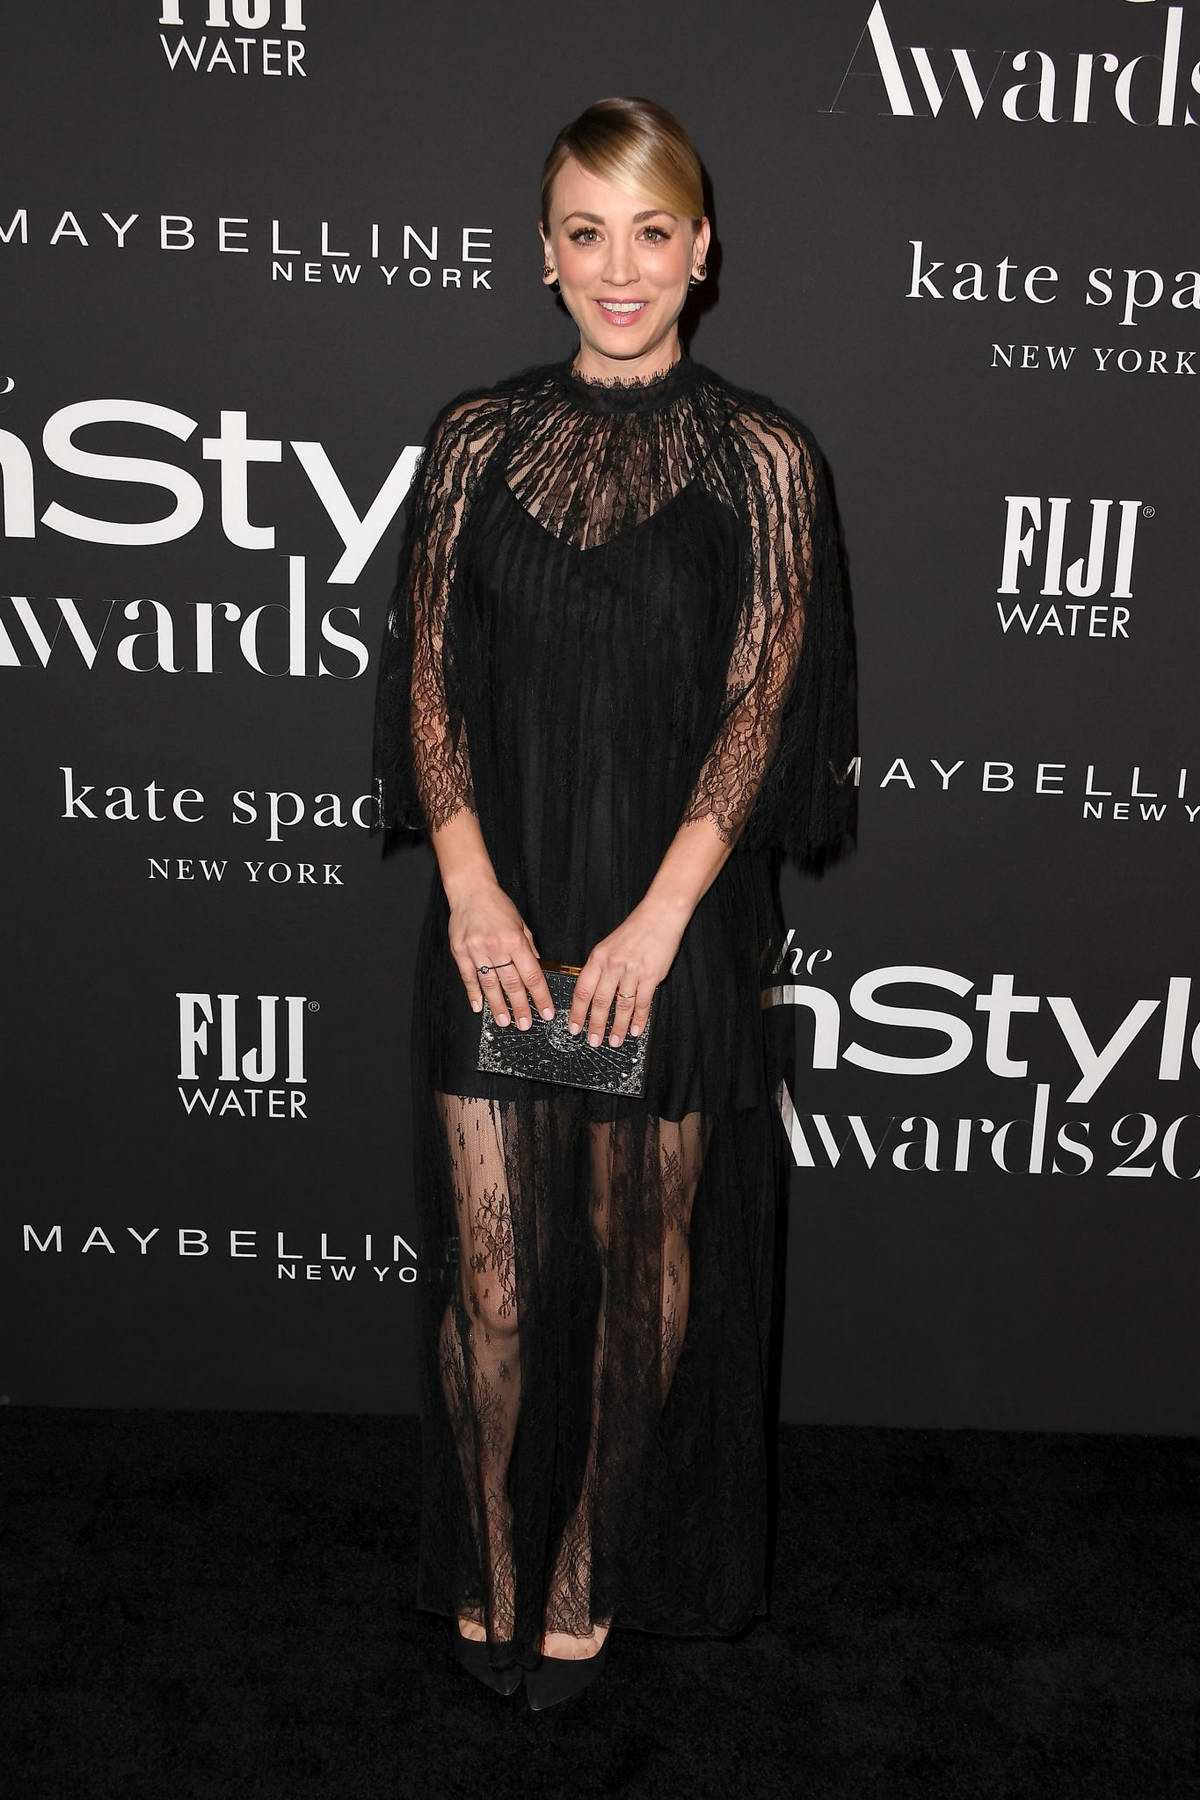 Kaley Cuoco attends the 5th Annual InStyle Awards in Los Angeles